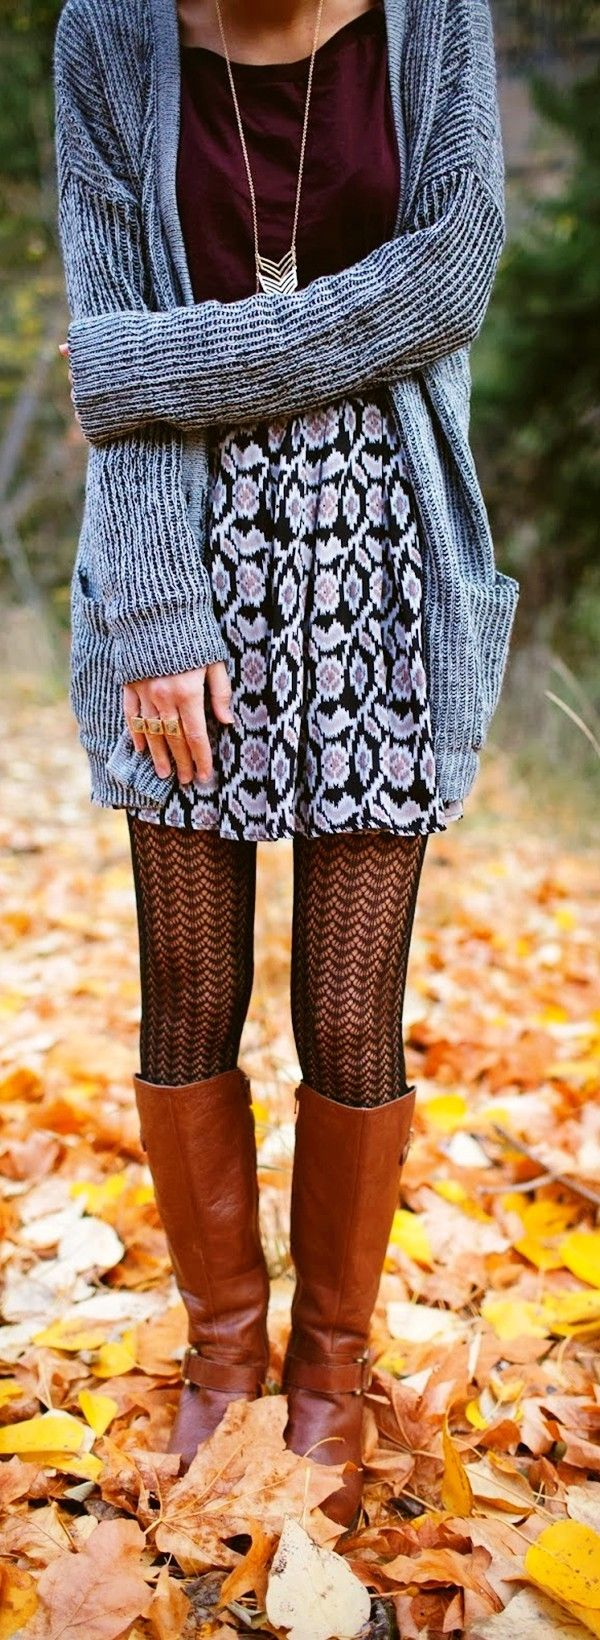 Gorgeous street style with cardigan, necklace, leggings, brown buckled boot